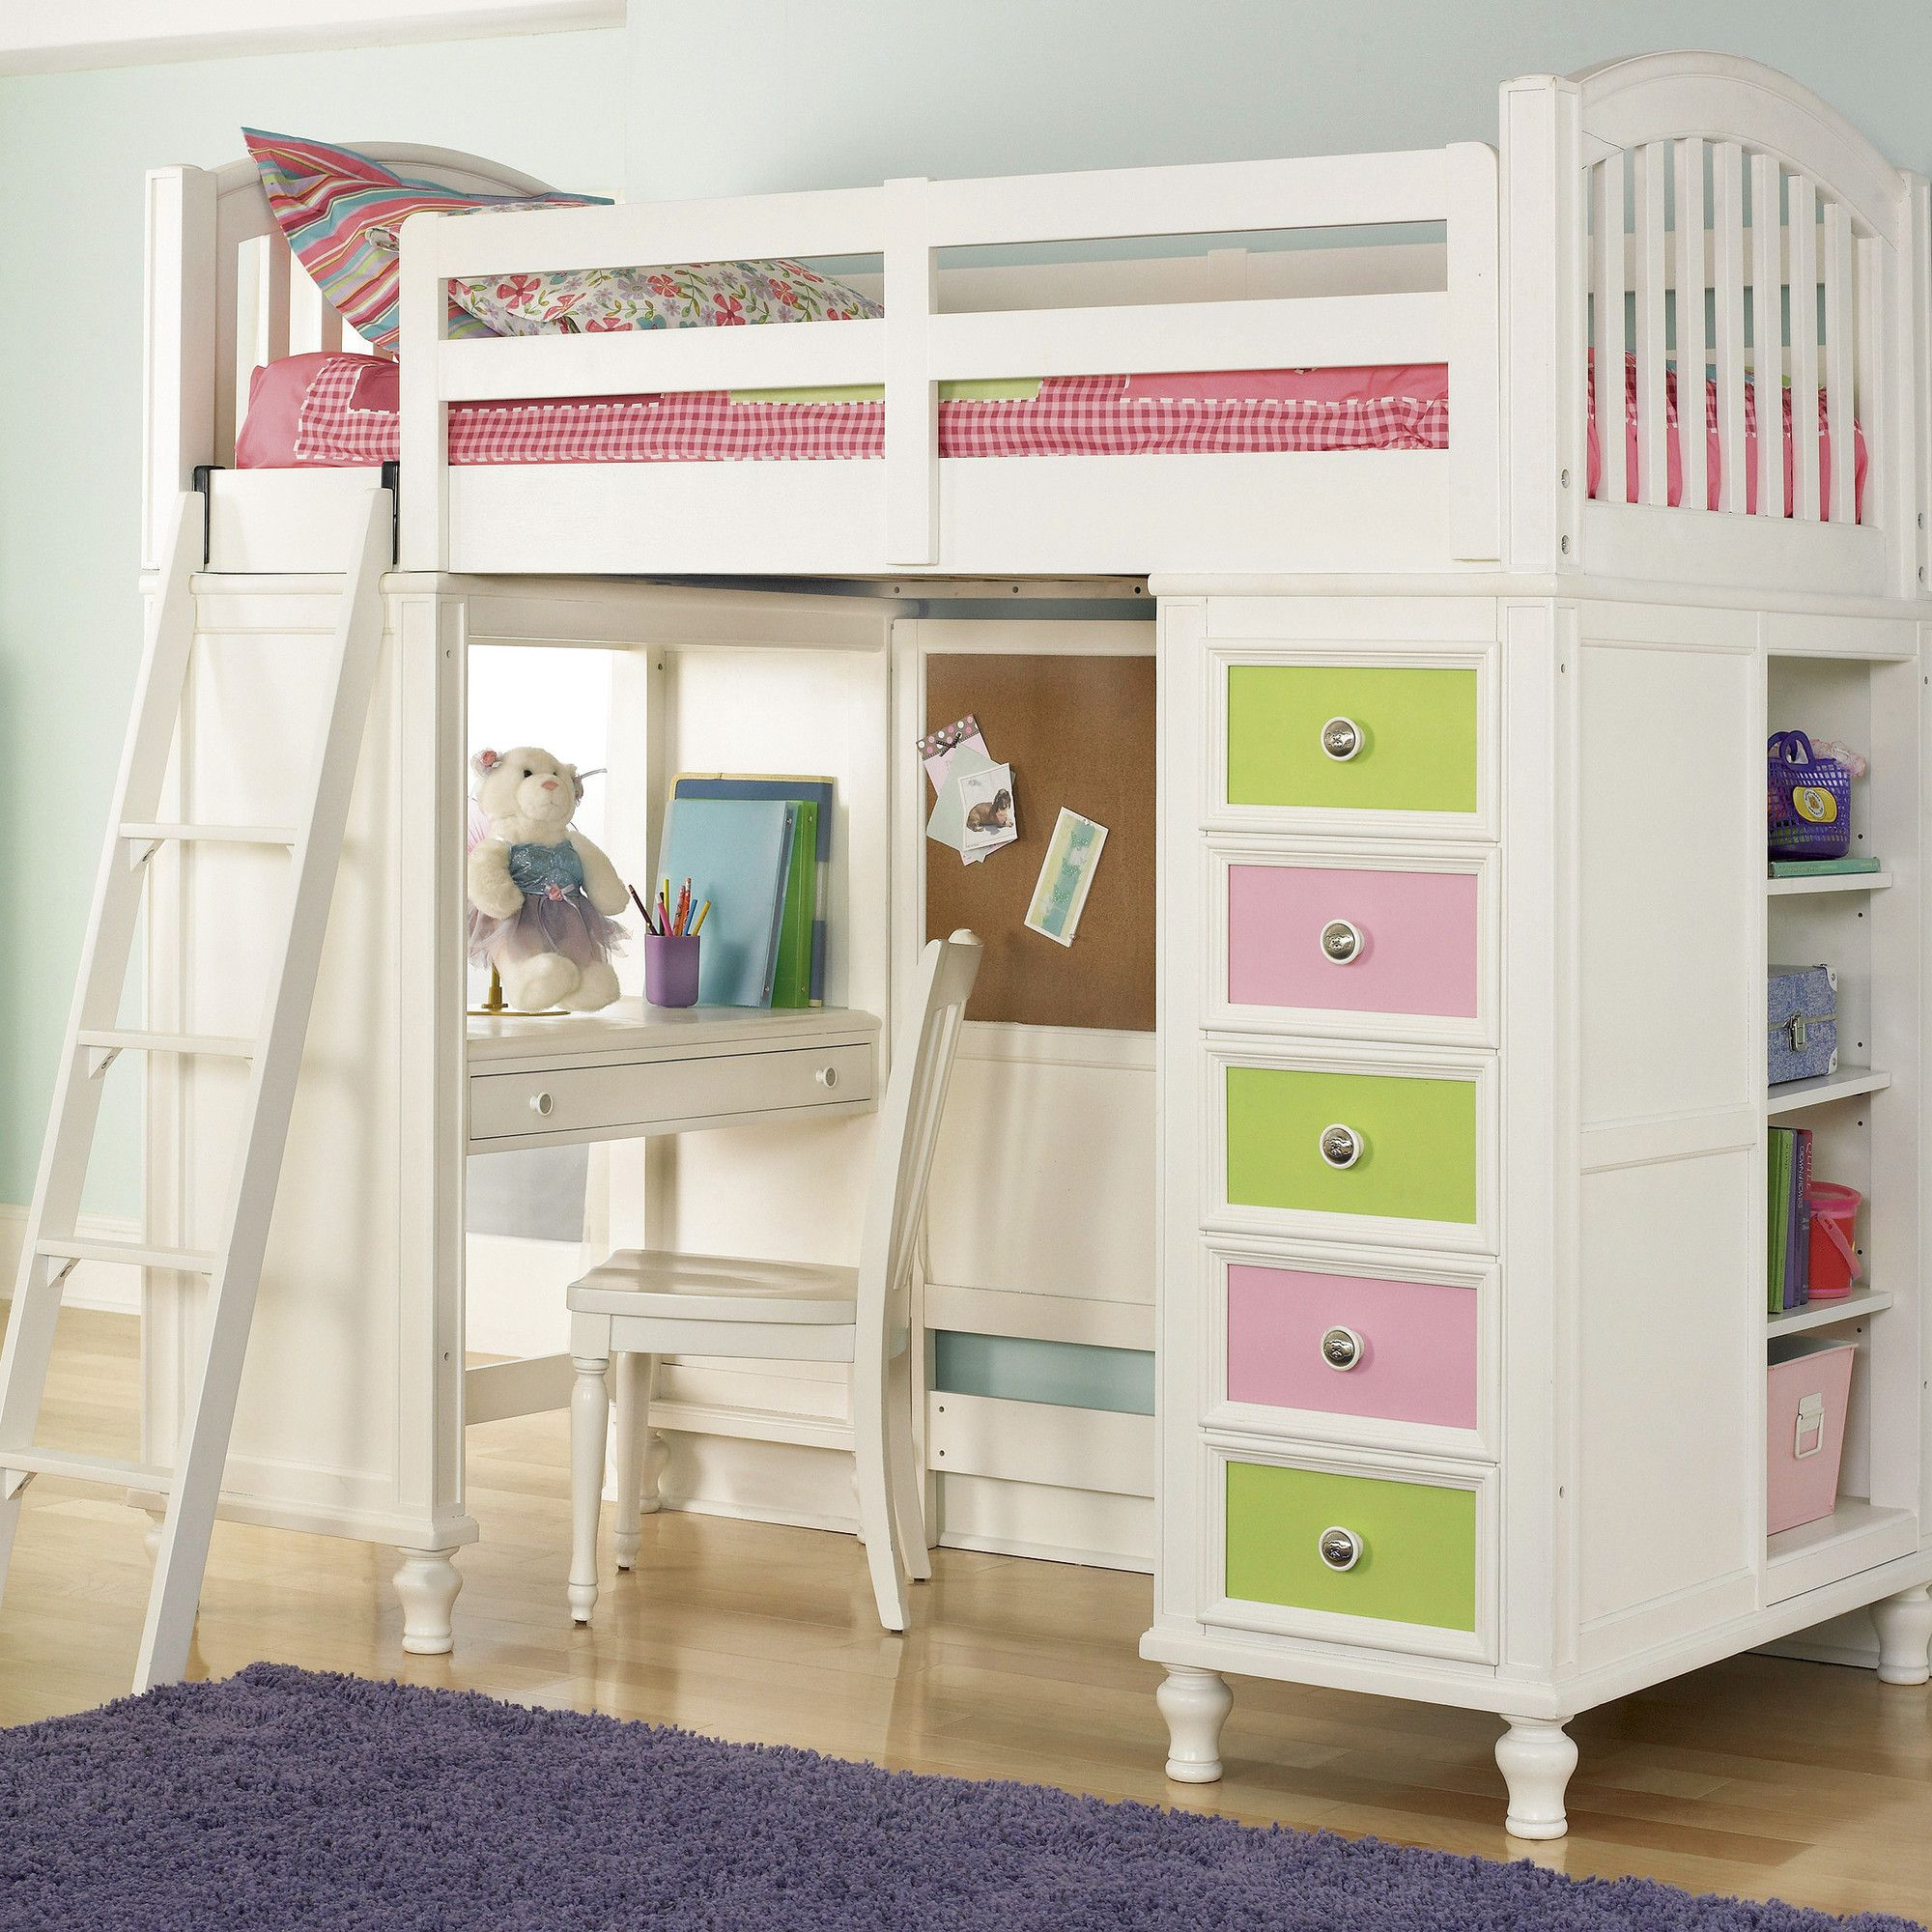 Build A Bear By Pulaski Pawsitively Yours Twin Loft Bed With Desk And Storage